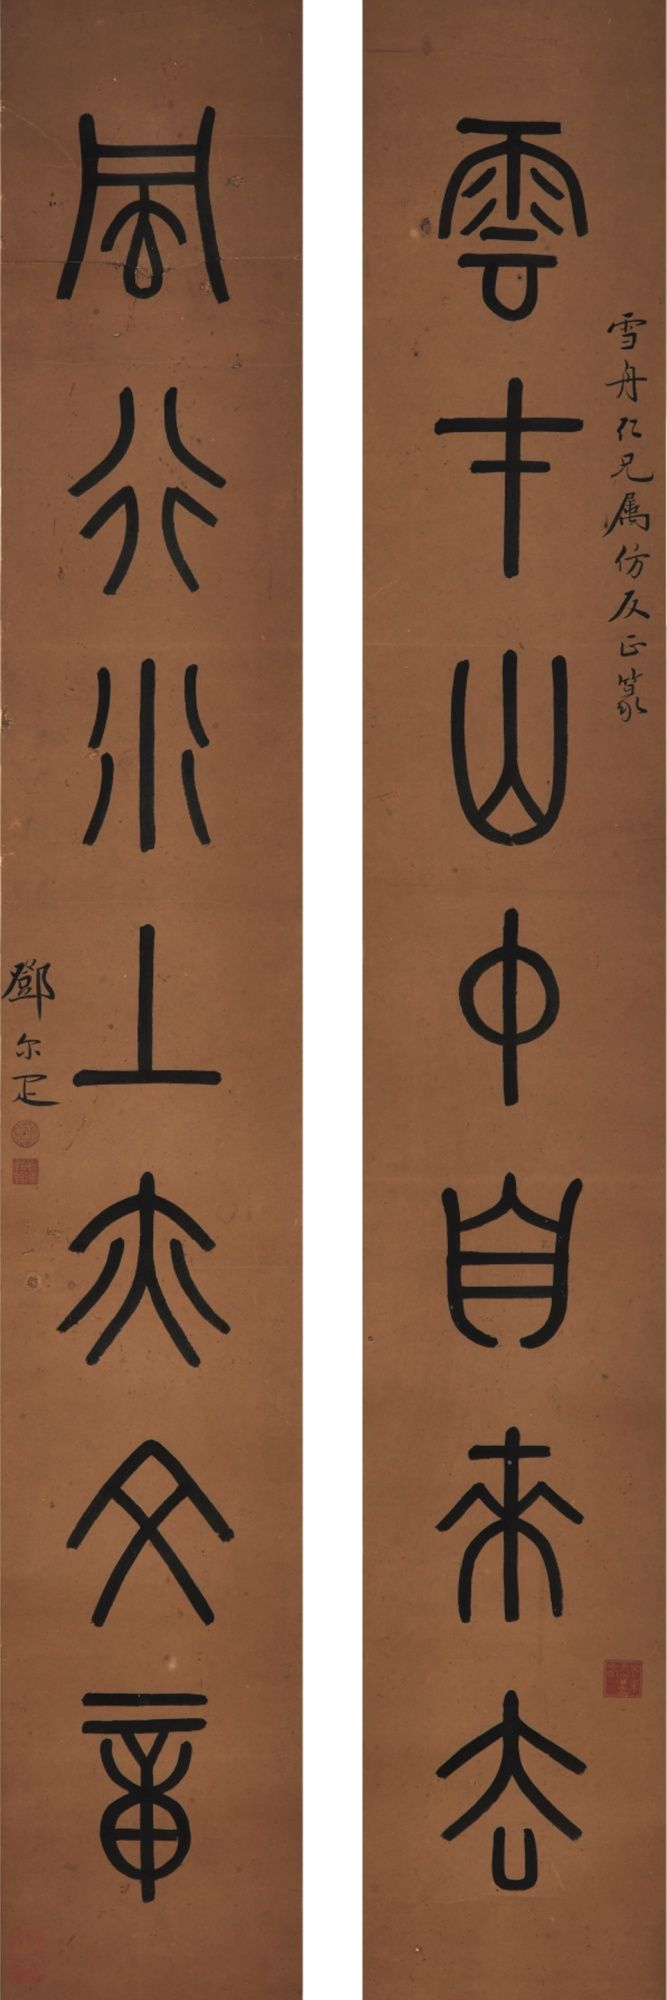 Deng Erya  (1884-1954)  CALLIGRAPHY COUPLET IN ZHUANSHU  signed DENG ERYA, with a dedication, three seals of the artist, and one collector's seal  ink on paper, pair of hanging scrolls  each 126.6 by 19.2 cm 49 7/8 by 7 ½ in.   鄧爾雅 反正篆七言聯  (1884-1954)  水墨紙本 立軸  款識:雲在山中自來去,風行水上亦文章。  雪舟仁兄屬仿反正篆。鄧尔疋。  鈐印:「尔」、「晚號默翁」、「癸未元日立春」。  藏印:「何曼盦書畫」。  各 126.6 by 19.2 cm 49 7/8 by 7 ½ in. (2)